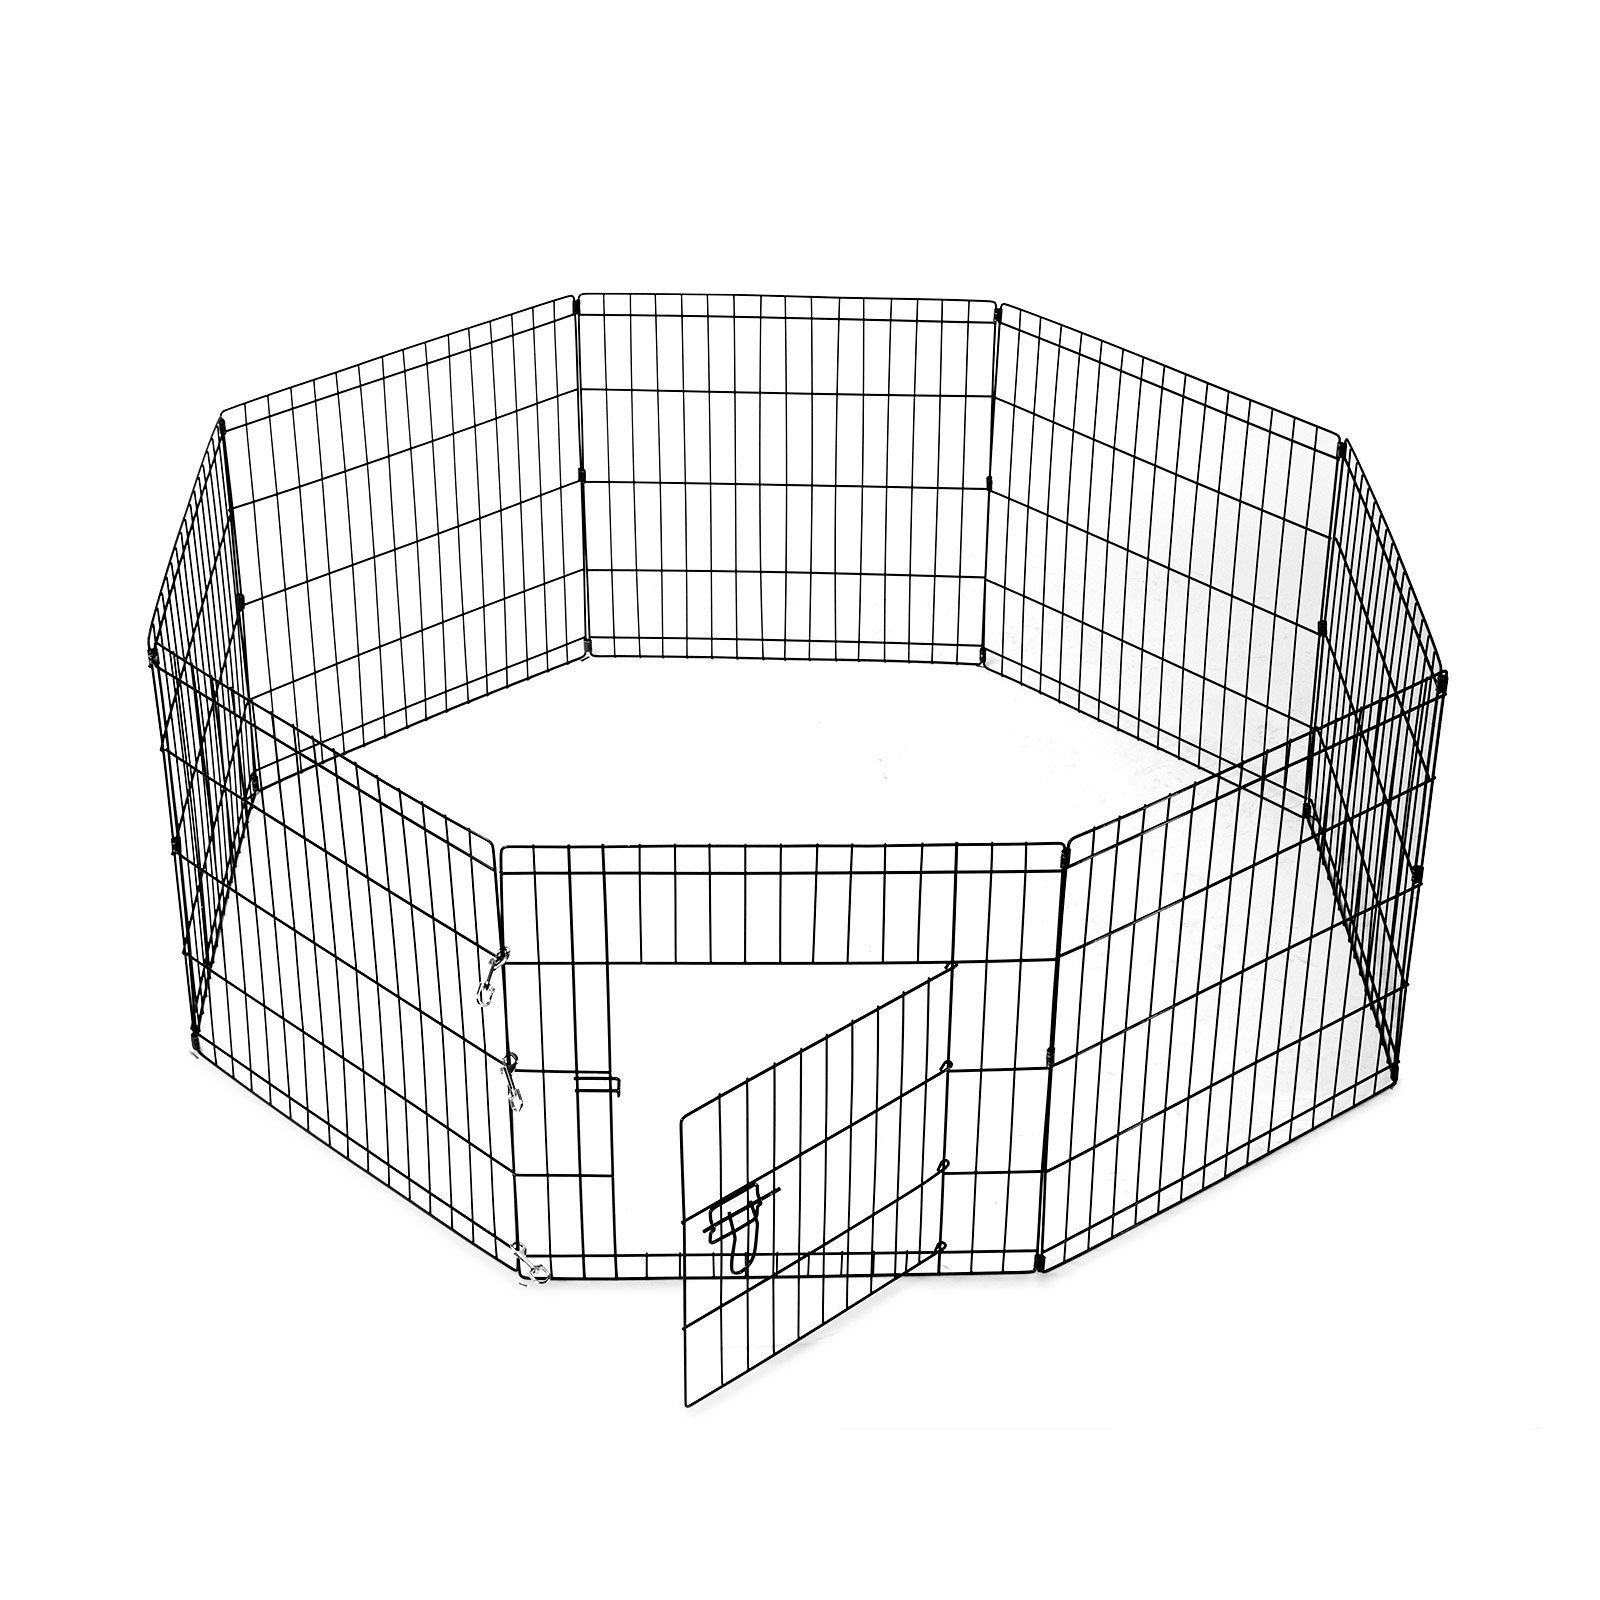 SmithBuilt Crates 8 Panel Metal Wire Popup Portable Fence Playpen Folding Exercise Yard with Door and Carry Bag, 24-Inch High, Black by SmithBuilt Crates (Image #3)